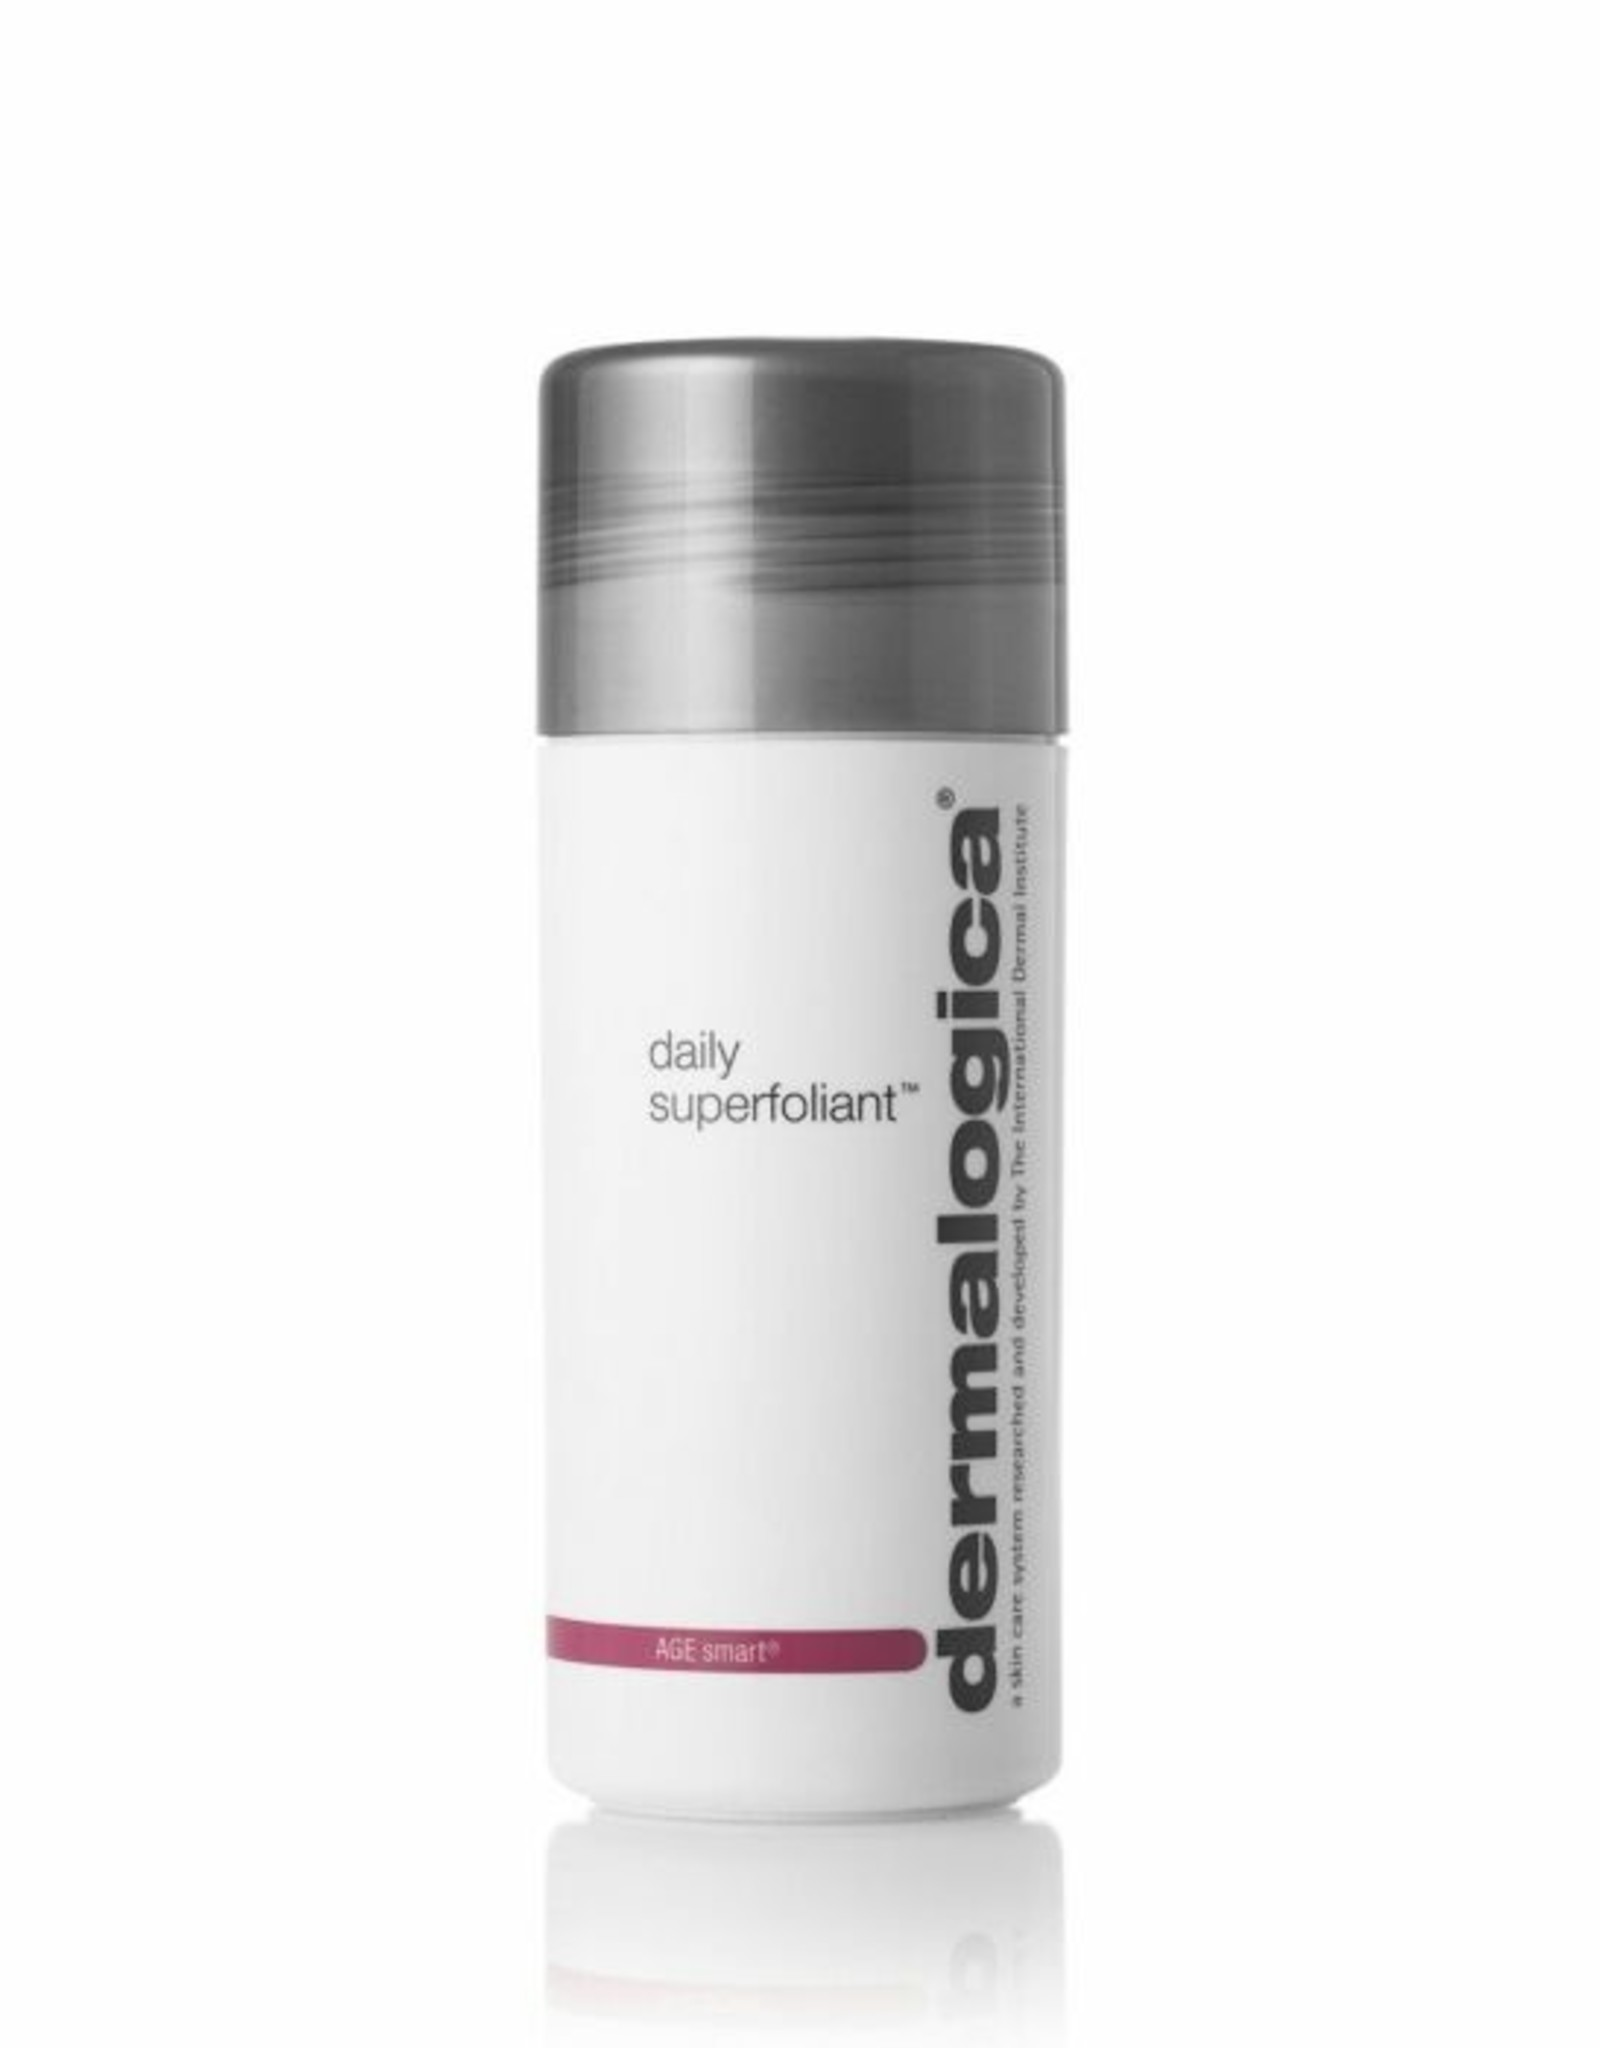 Dermalogica AGE Smart Daily Superfoliant 57g - Dermalogica